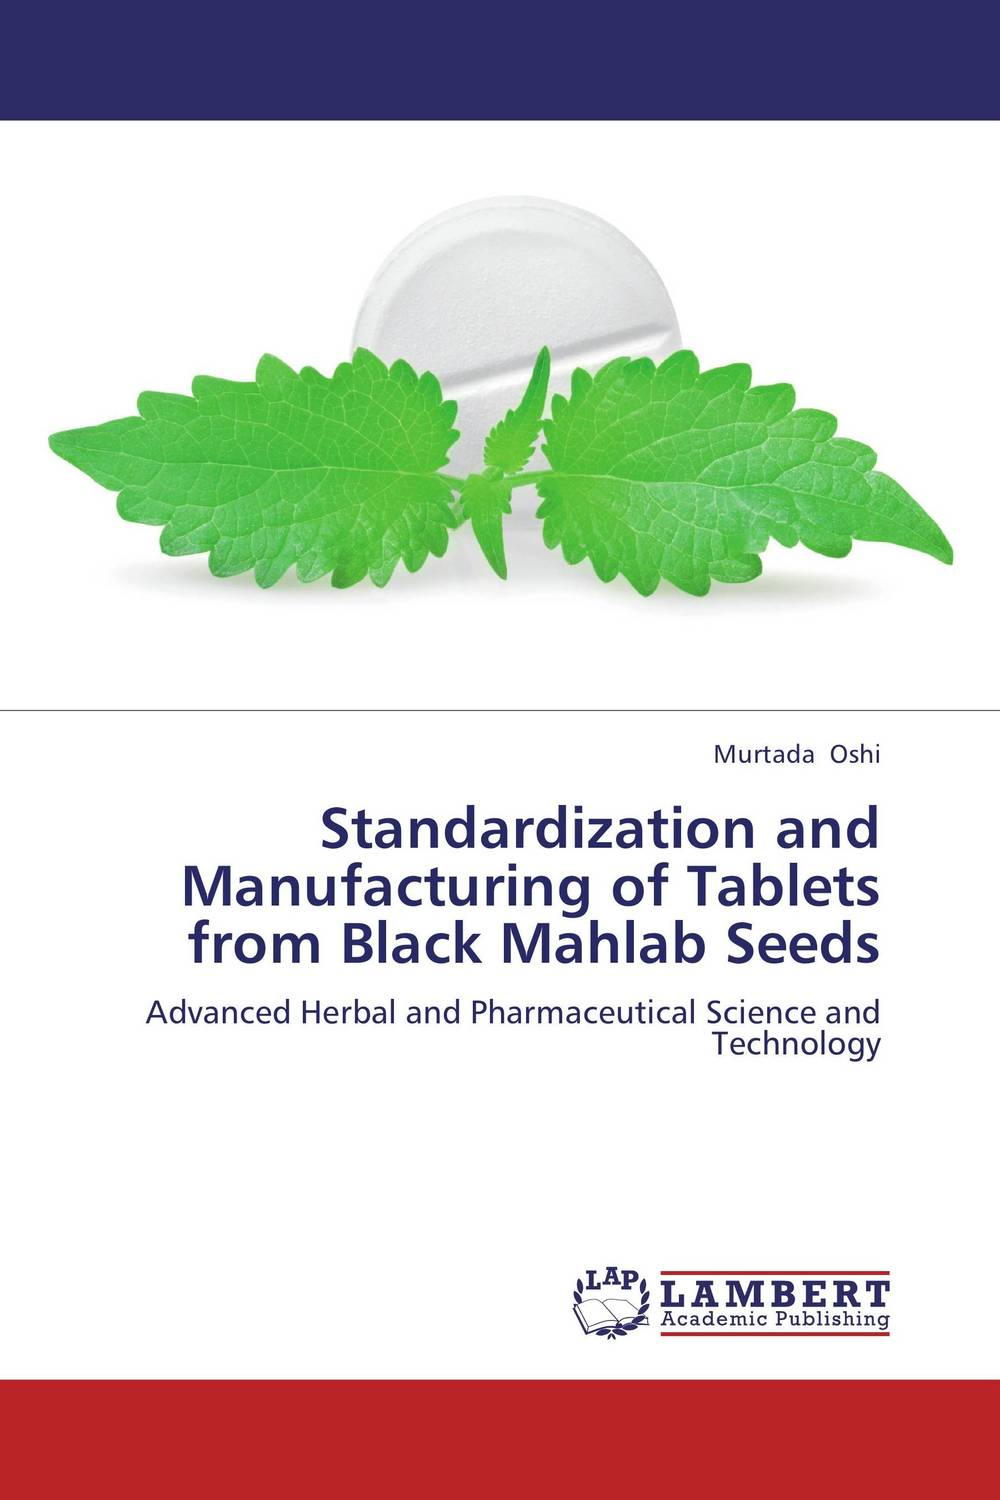 Standardization and Manufacturing of Tablets from Black Mahlab Seeds medicine manufacturing industry automation using microcontroller